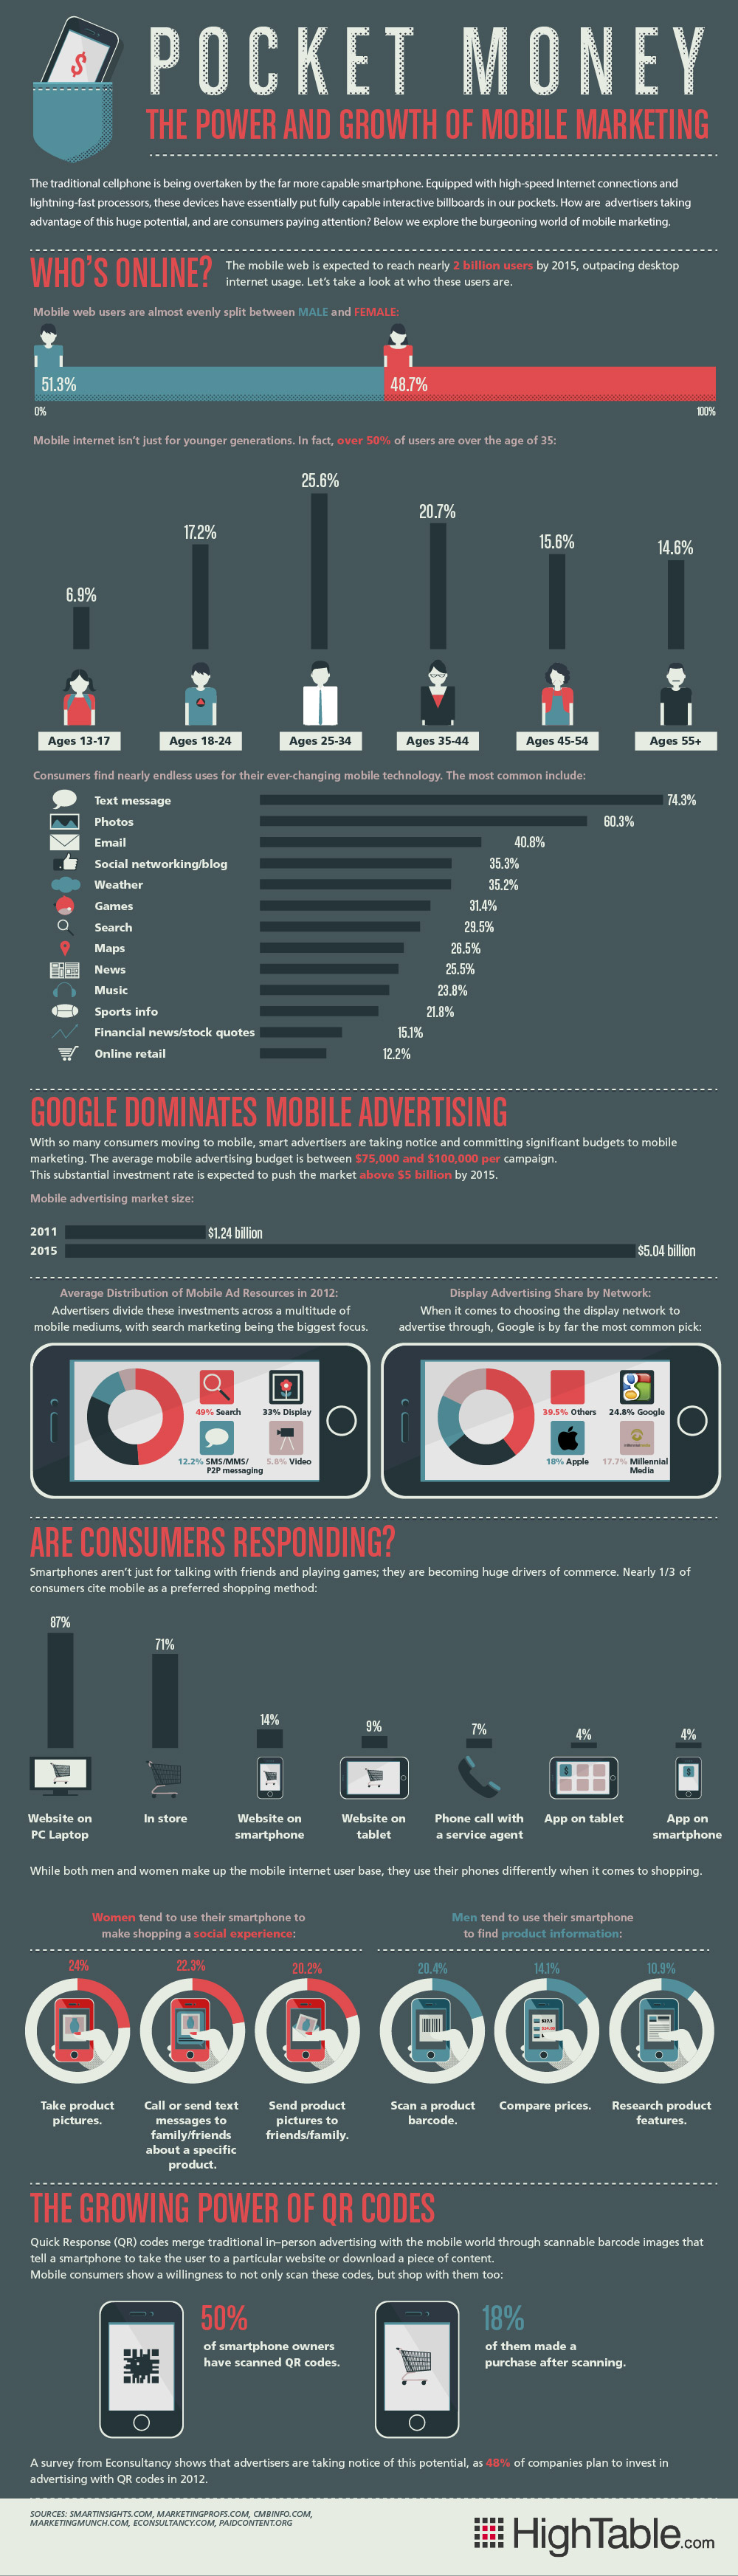 Mobile Marketing by The Numbers